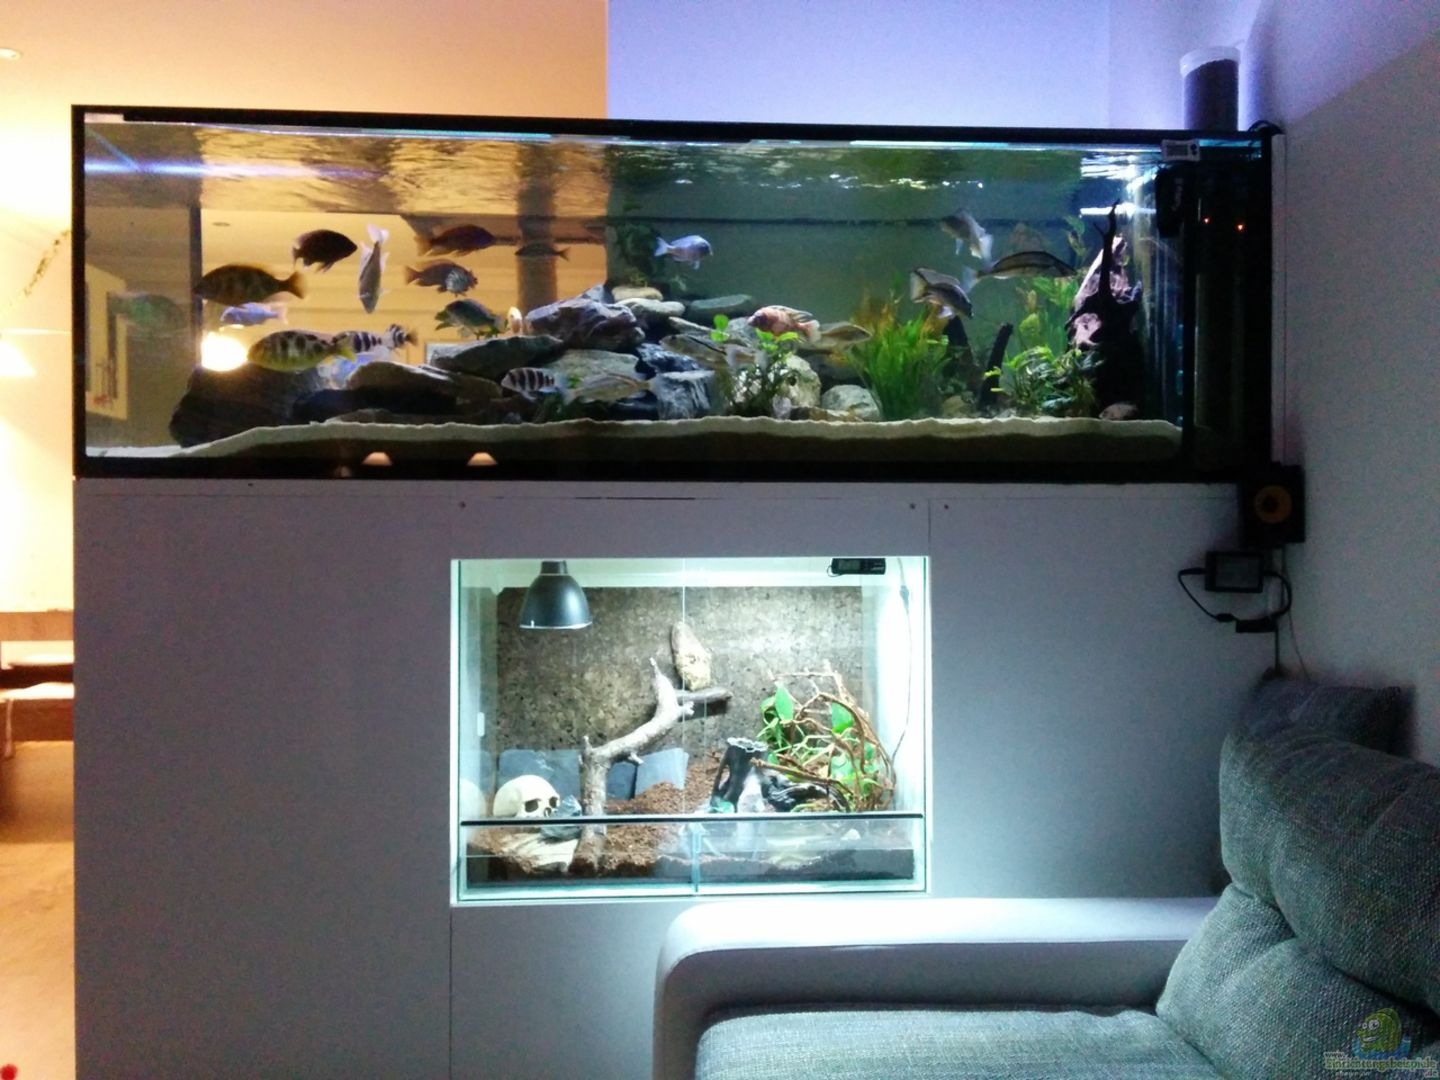 aquarium raumteiler mit terrarium im unterbau aus. Black Bedroom Furniture Sets. Home Design Ideas